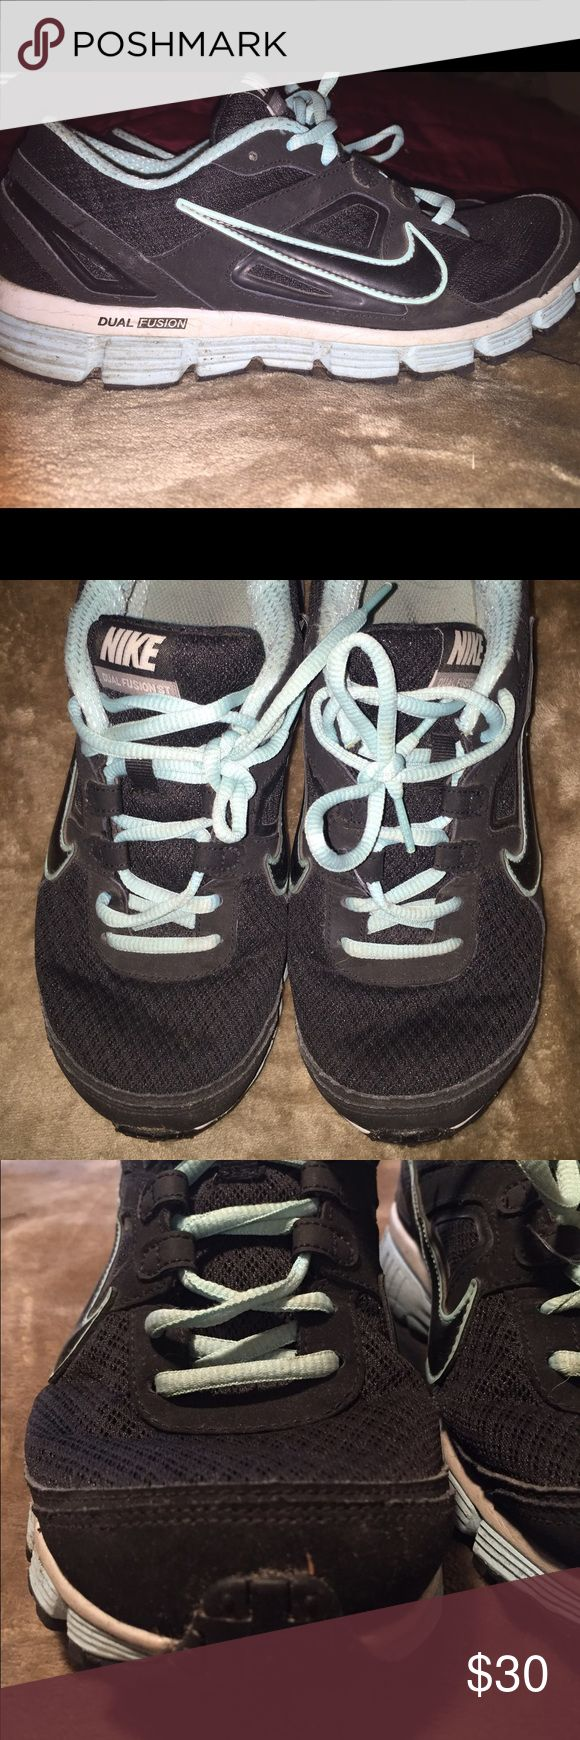 Nike Dual Fusion sneakers Black and light blue ladies size 9 dual fusion Nike athletic shoes. Still lots of life left in them. Can clean up the outside with a quick wipe down. Nike Shoes Athletic Shoes